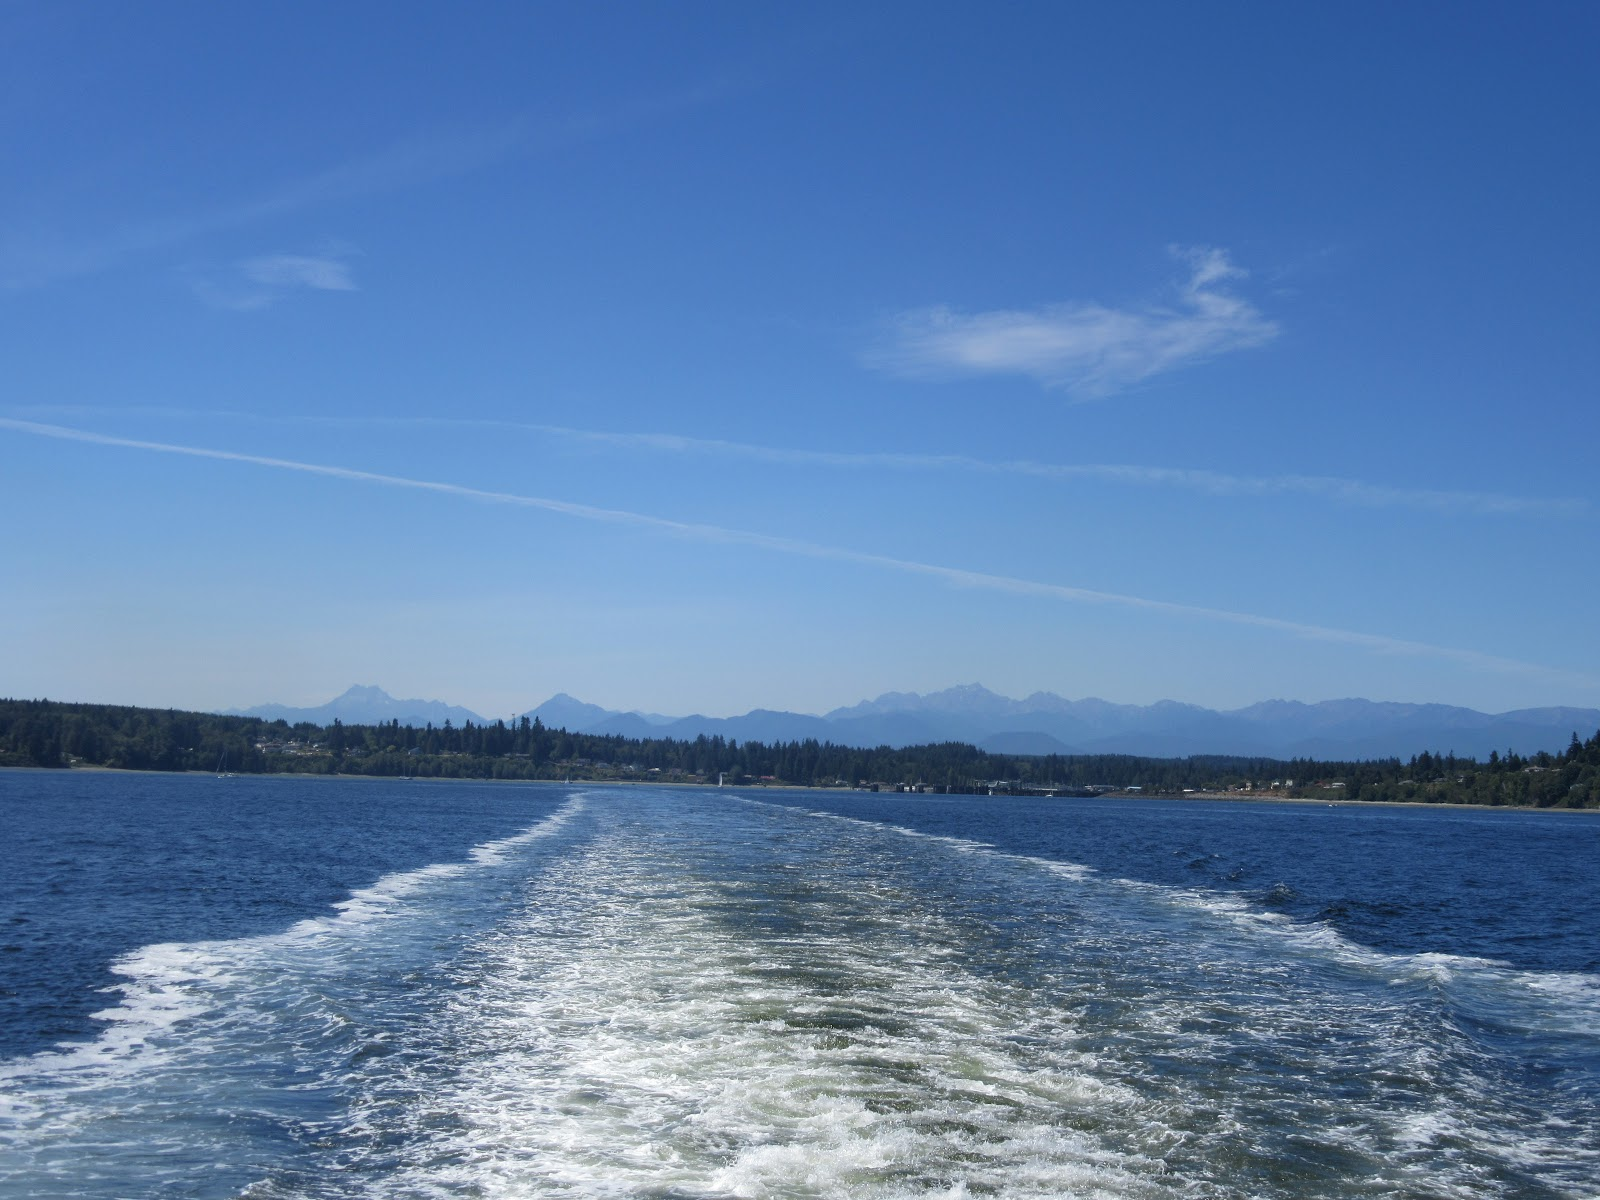 Ocean and wake from ferry on way to Hurricane Ridge